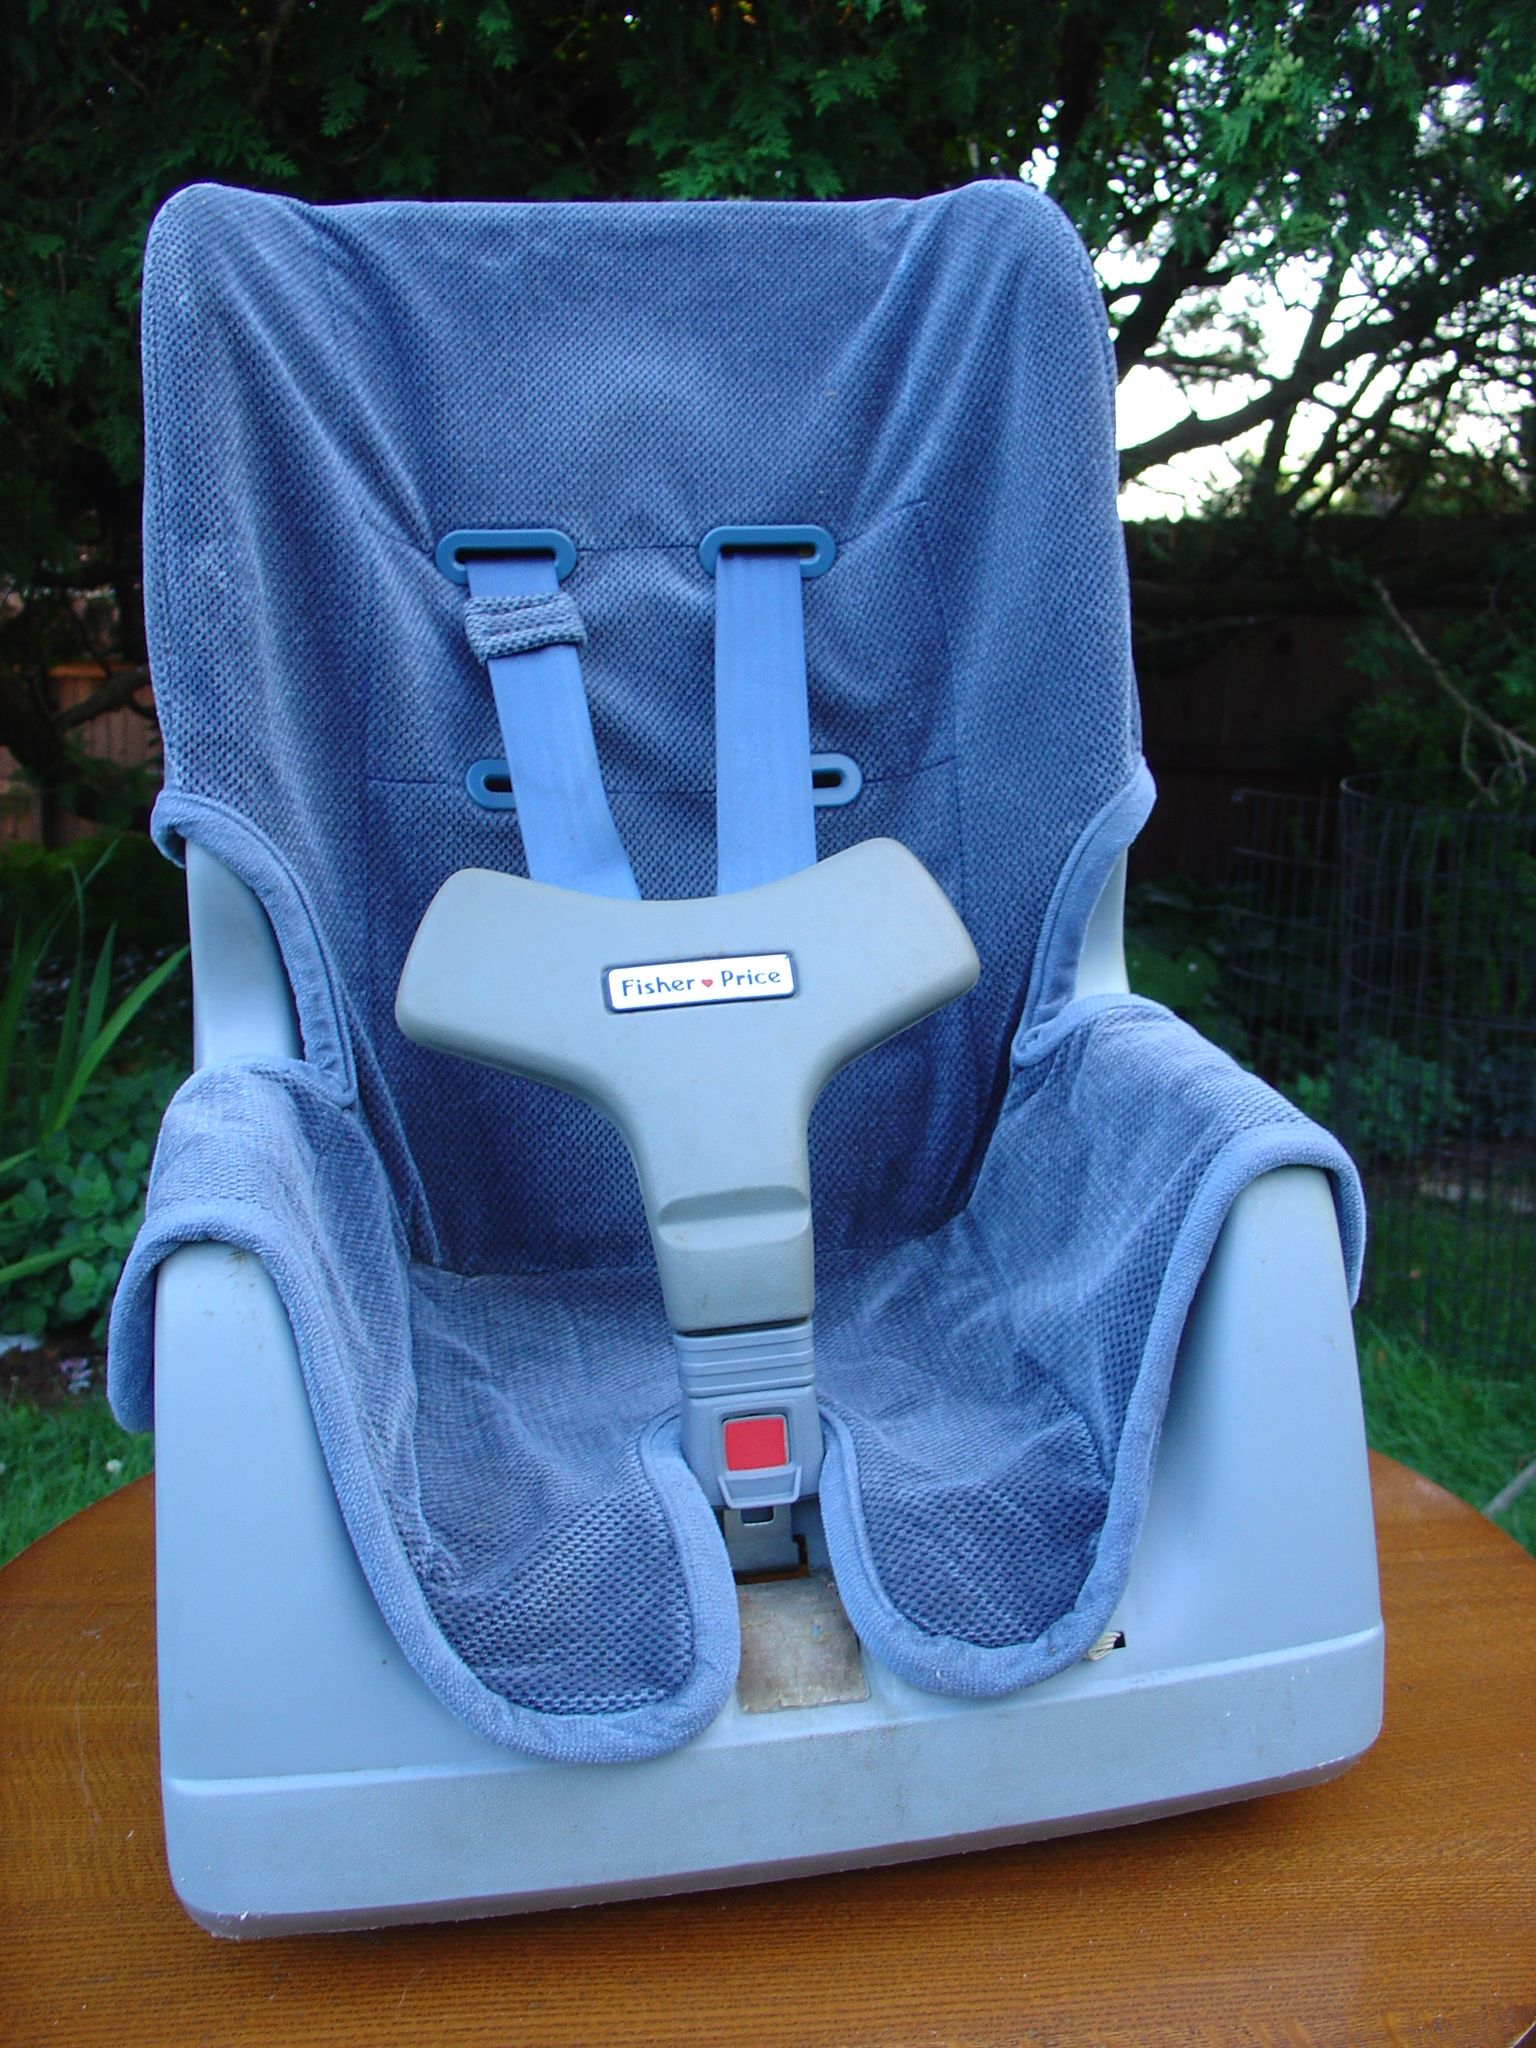 Car Seat Toy Fisher Price : Fisher price t shield vintage car seats pinterest